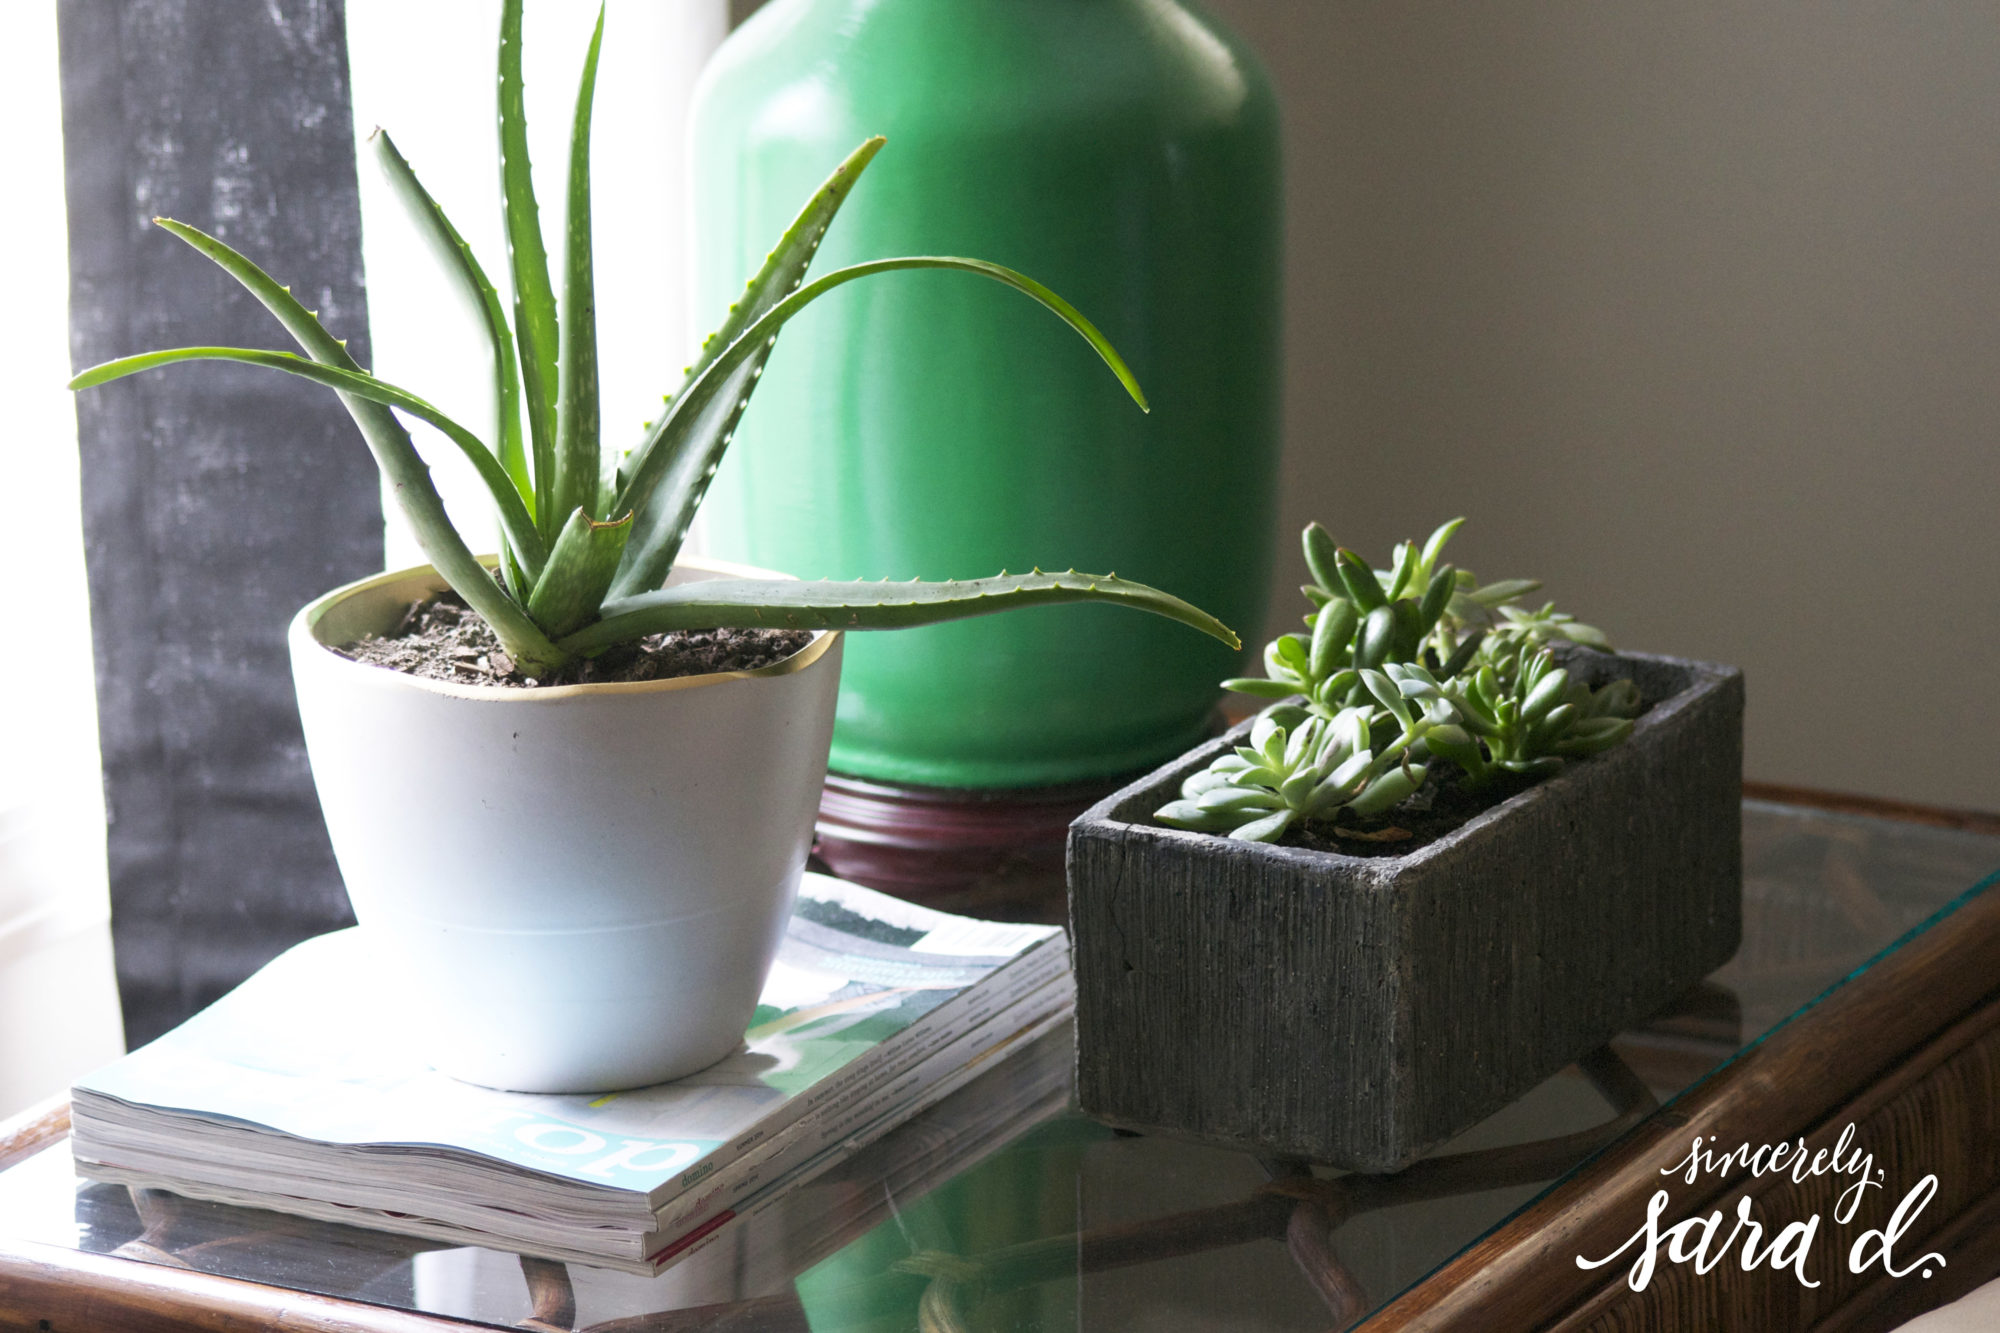 Using plants for decor